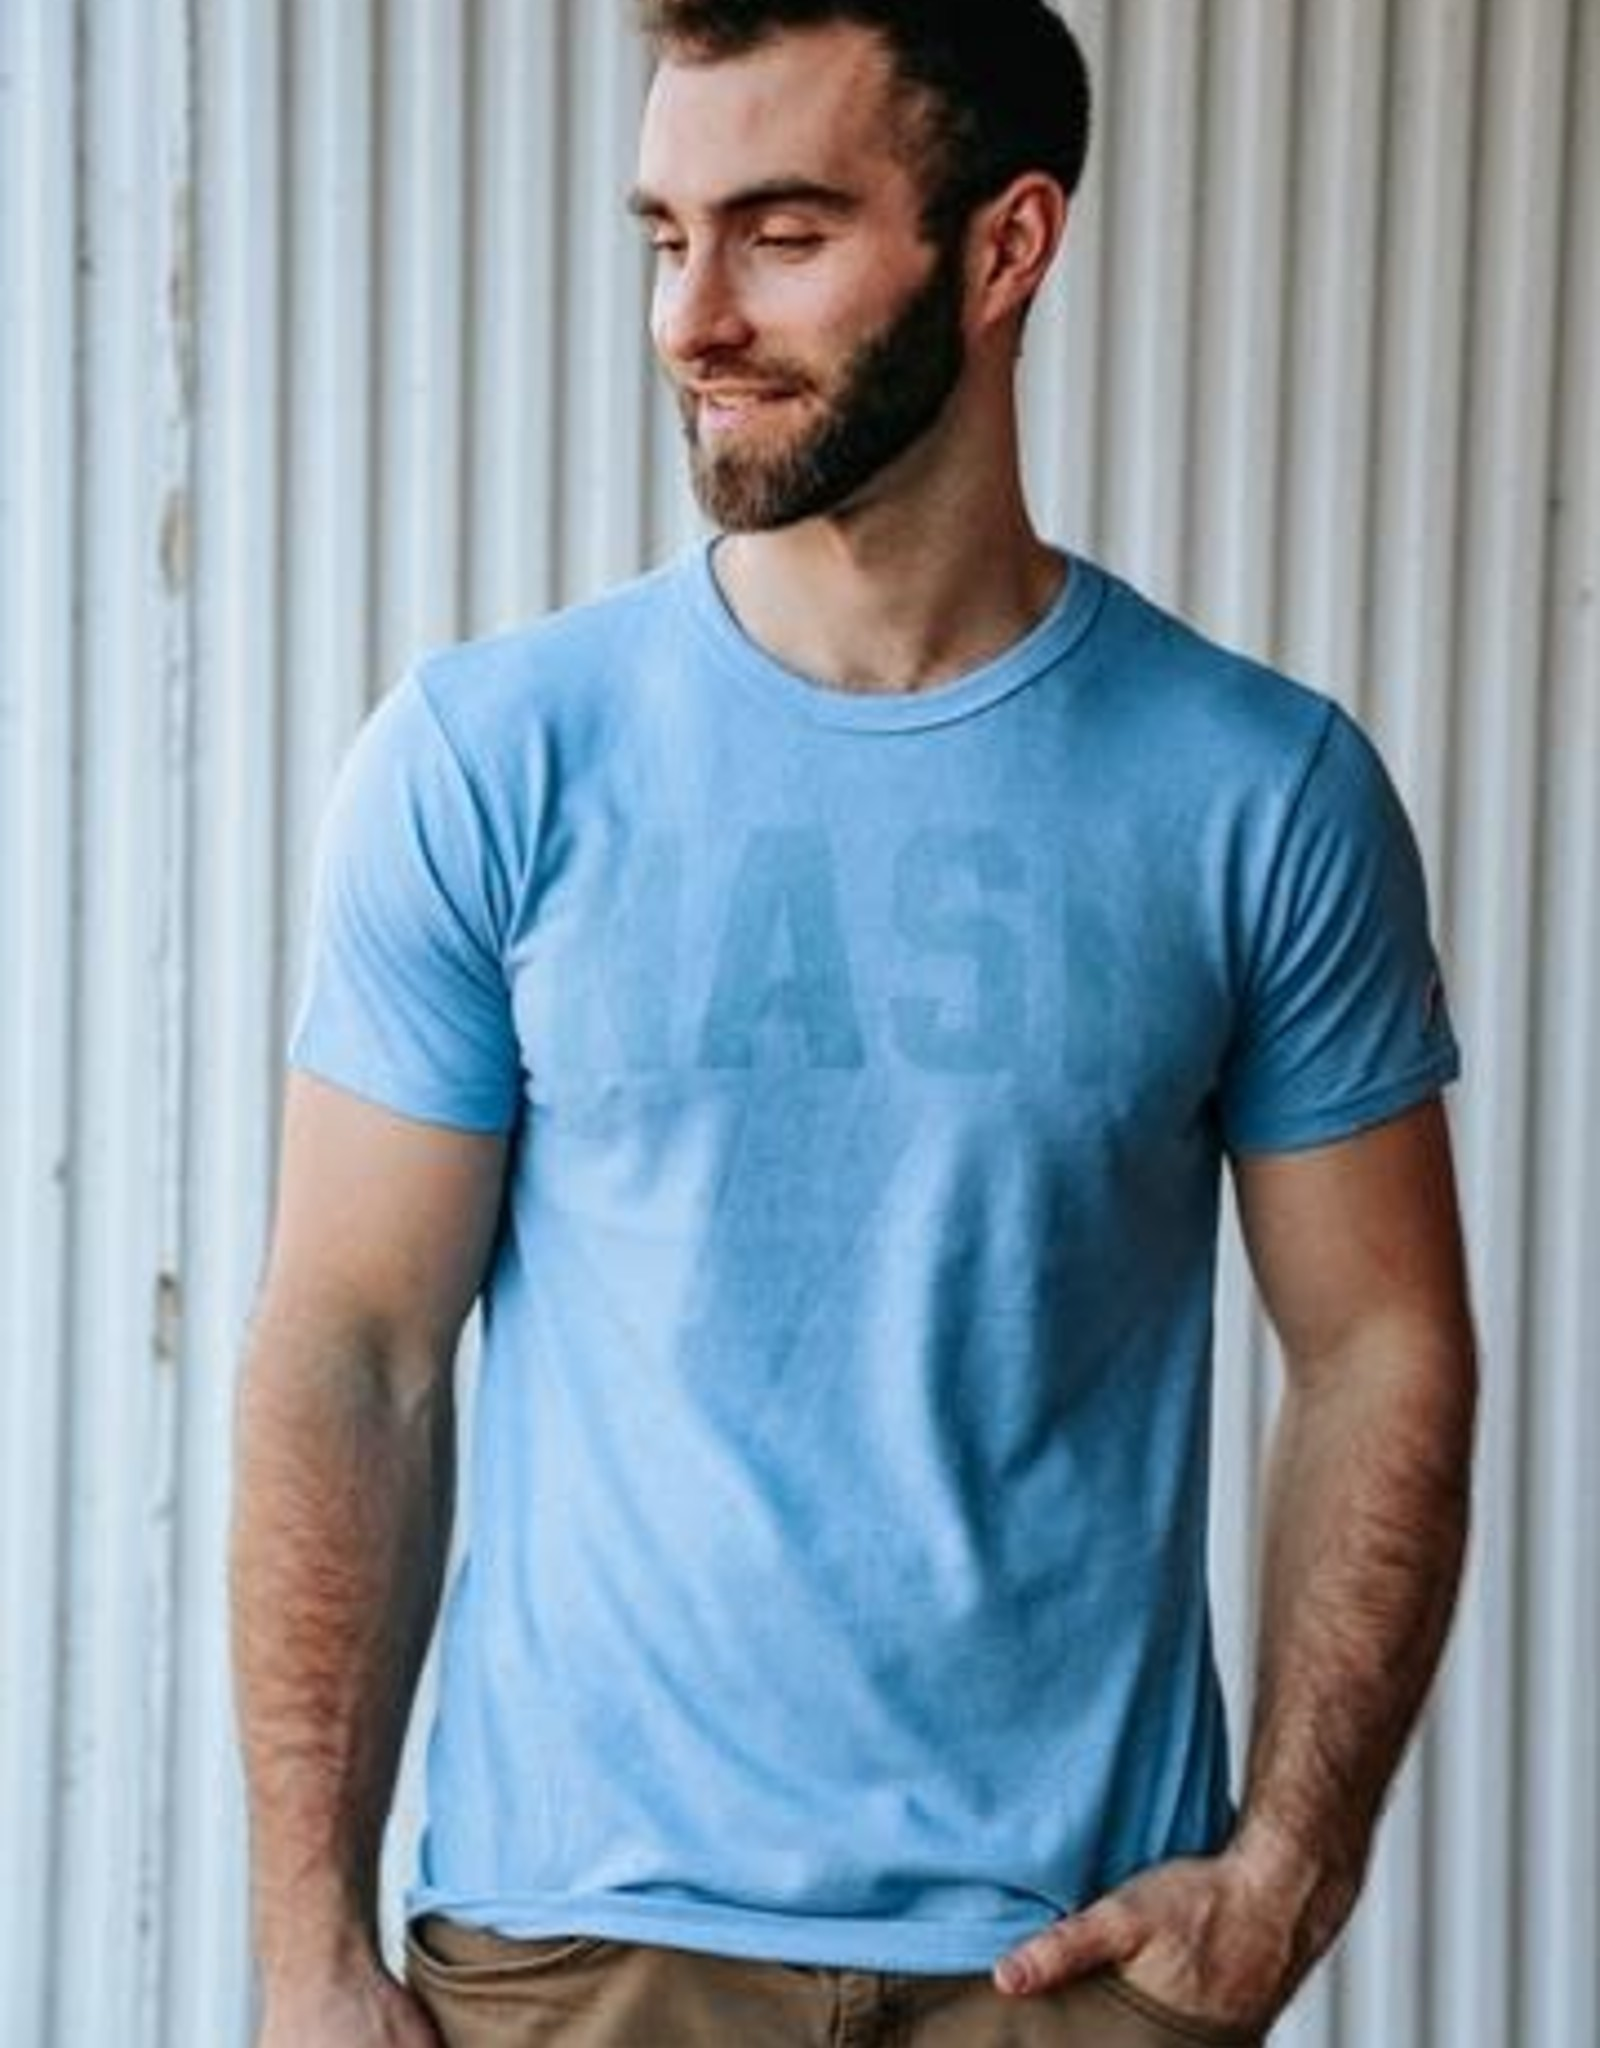 Nash Collection The Nash Collection- NASH Blue Jersey Tshirt